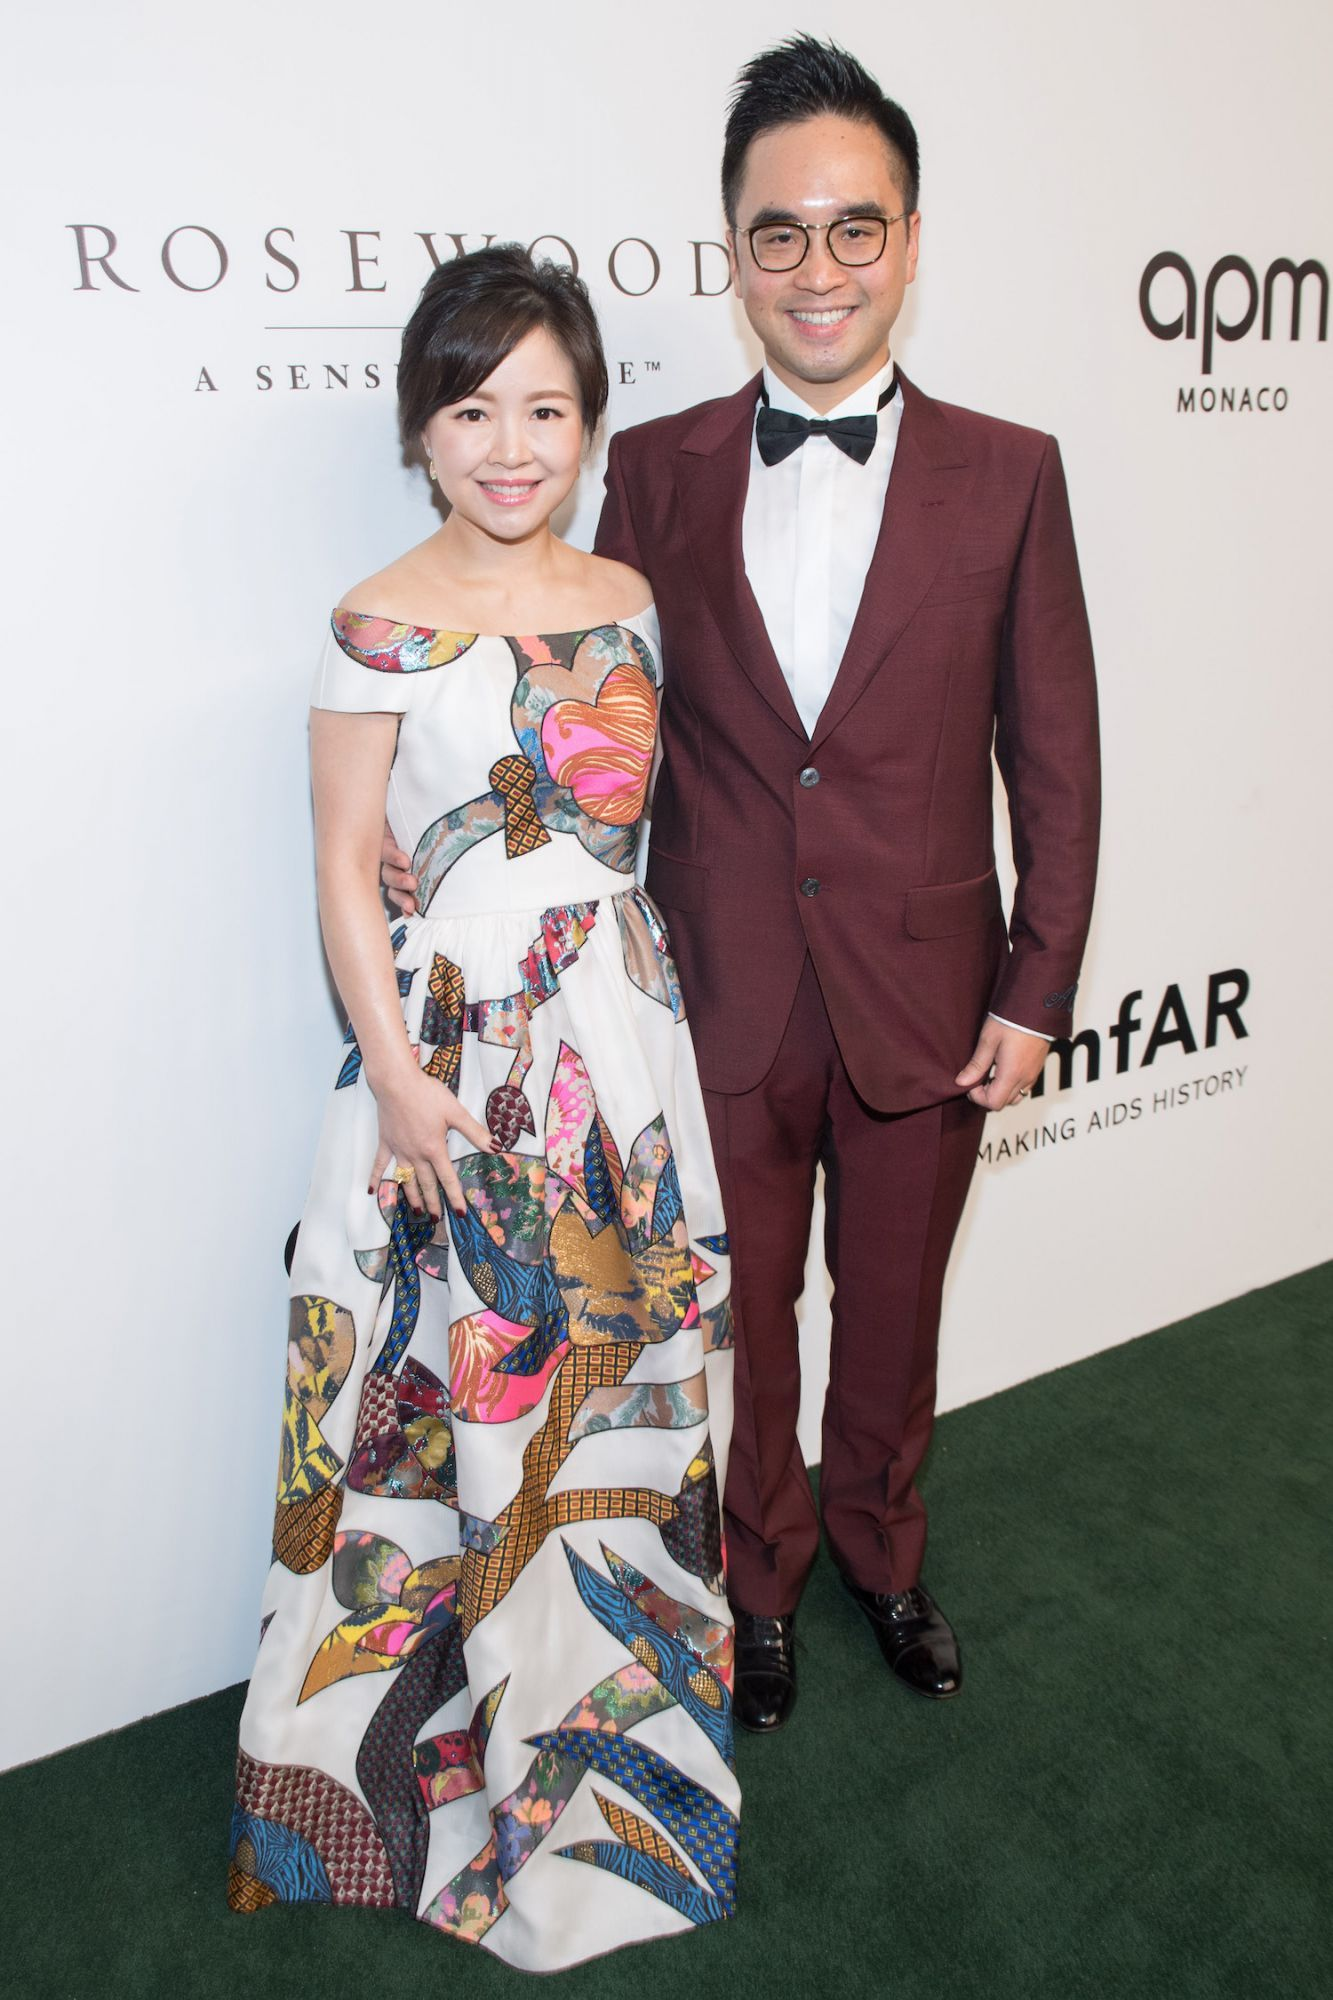 Adrian Cheng Named First Global Ambassador Of The CFDA